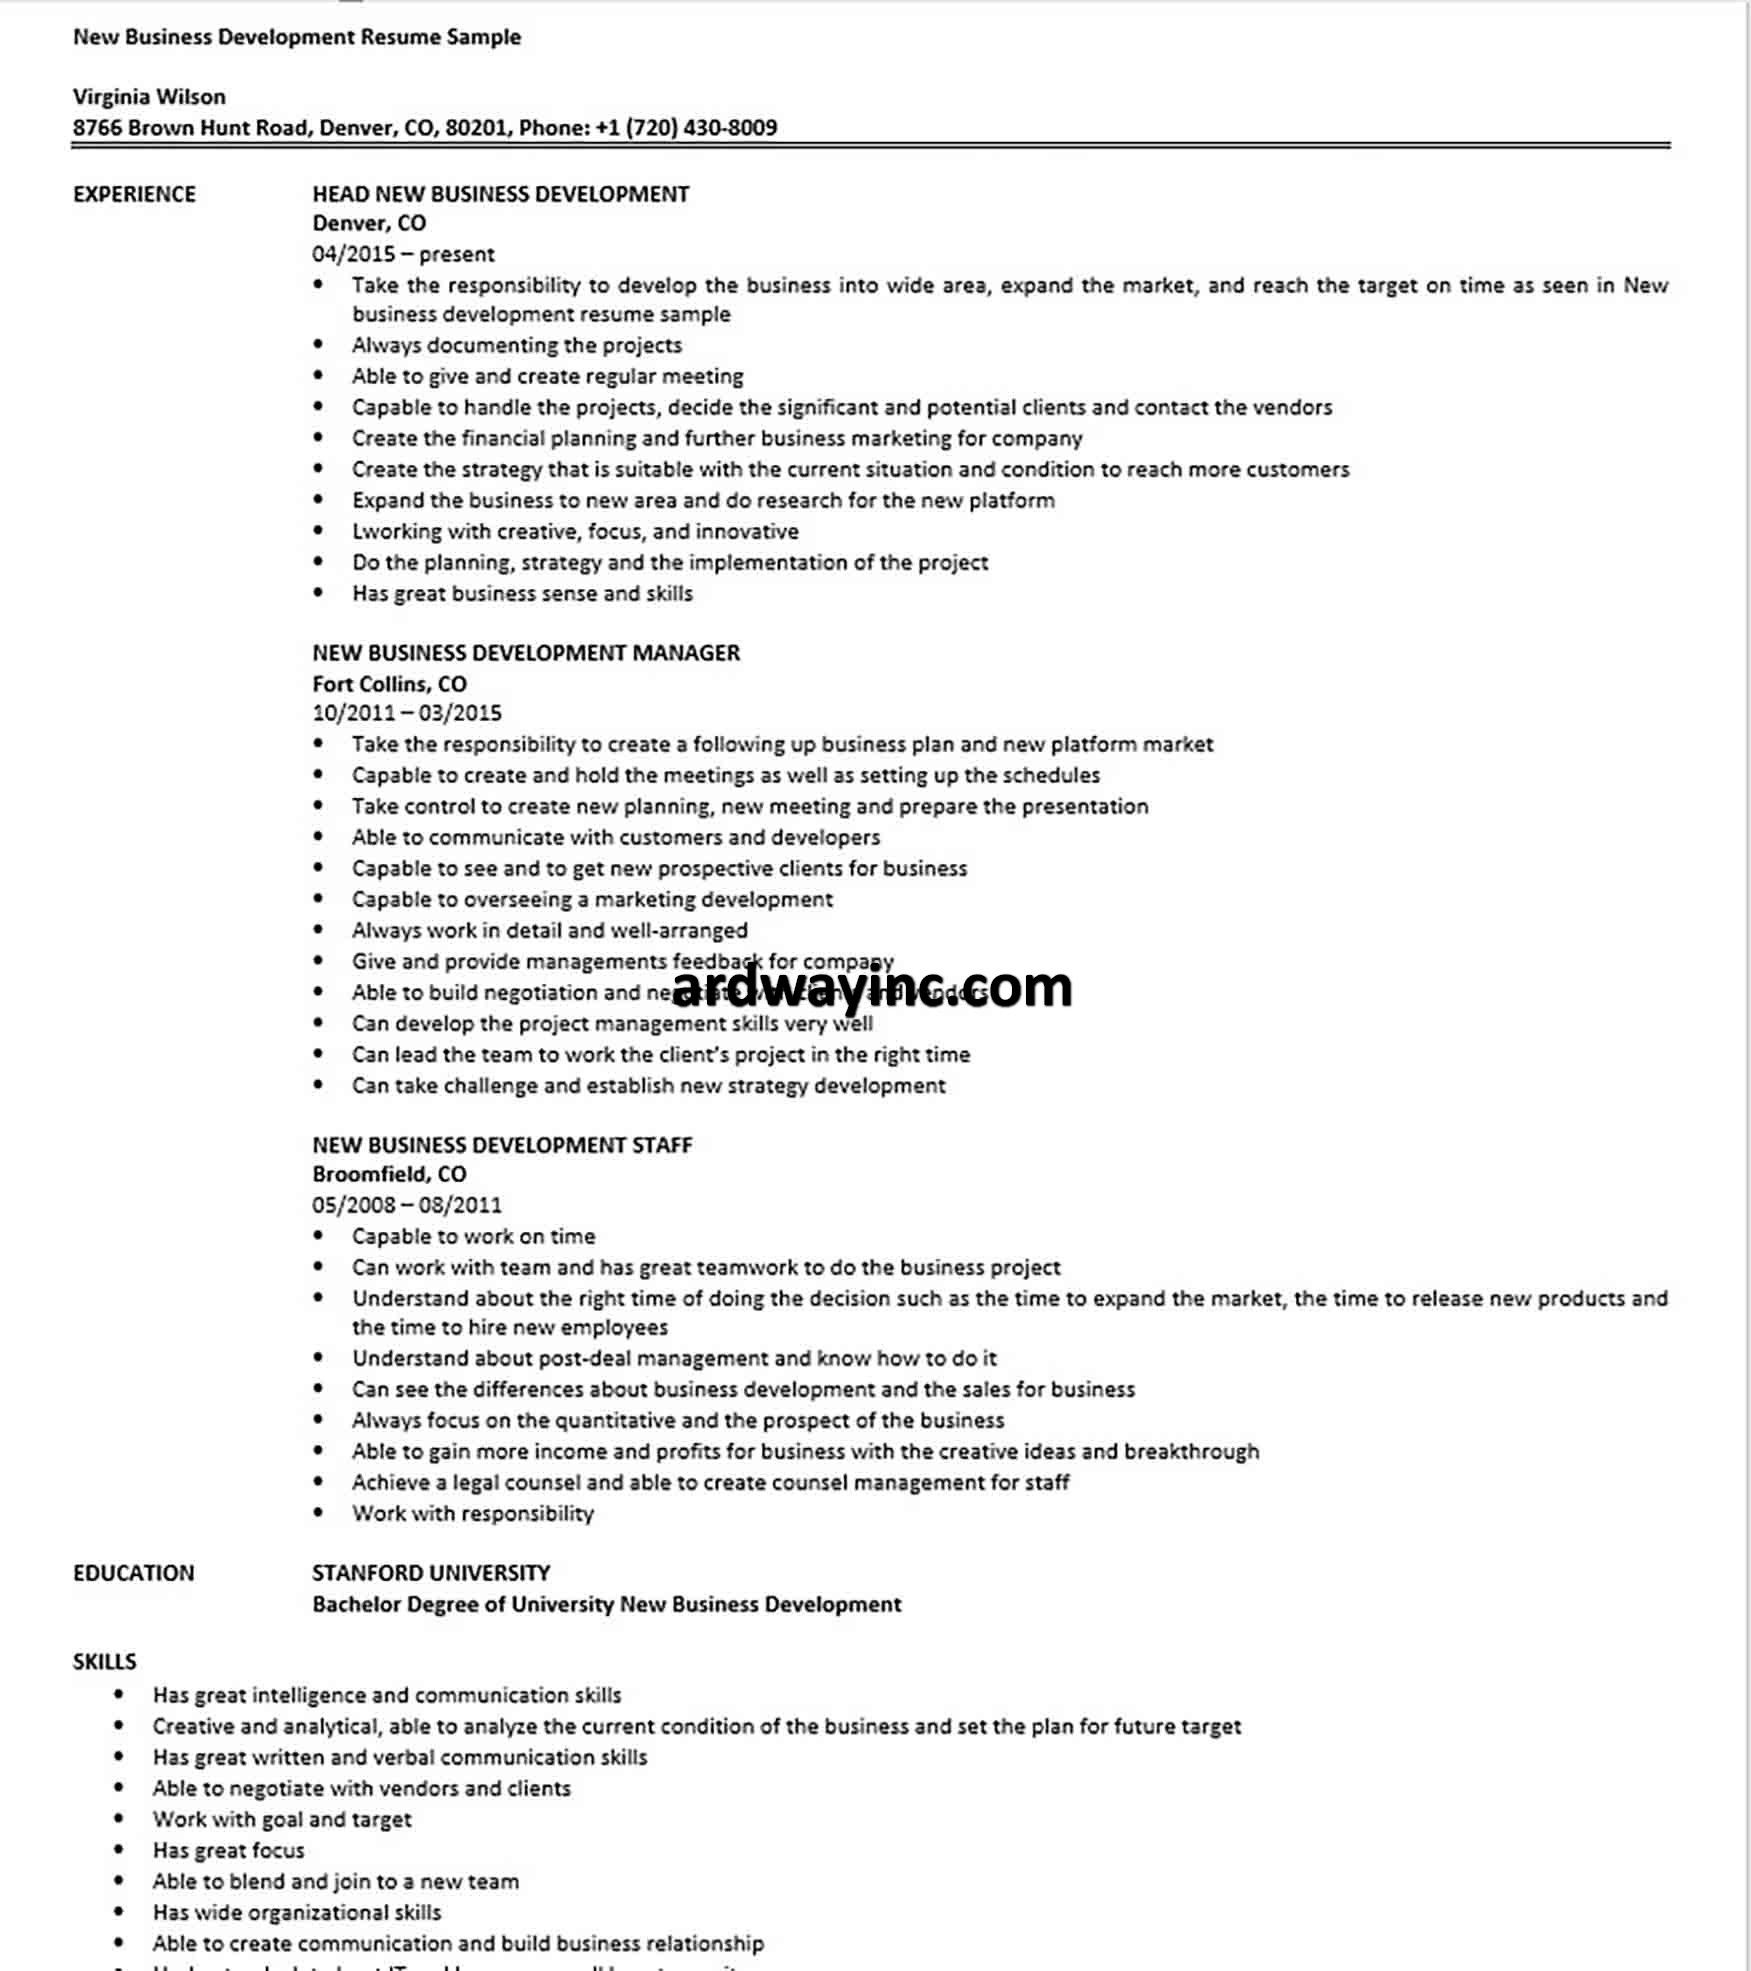 pin on business template resume samples for warehouse workers doctor objective latest format job application